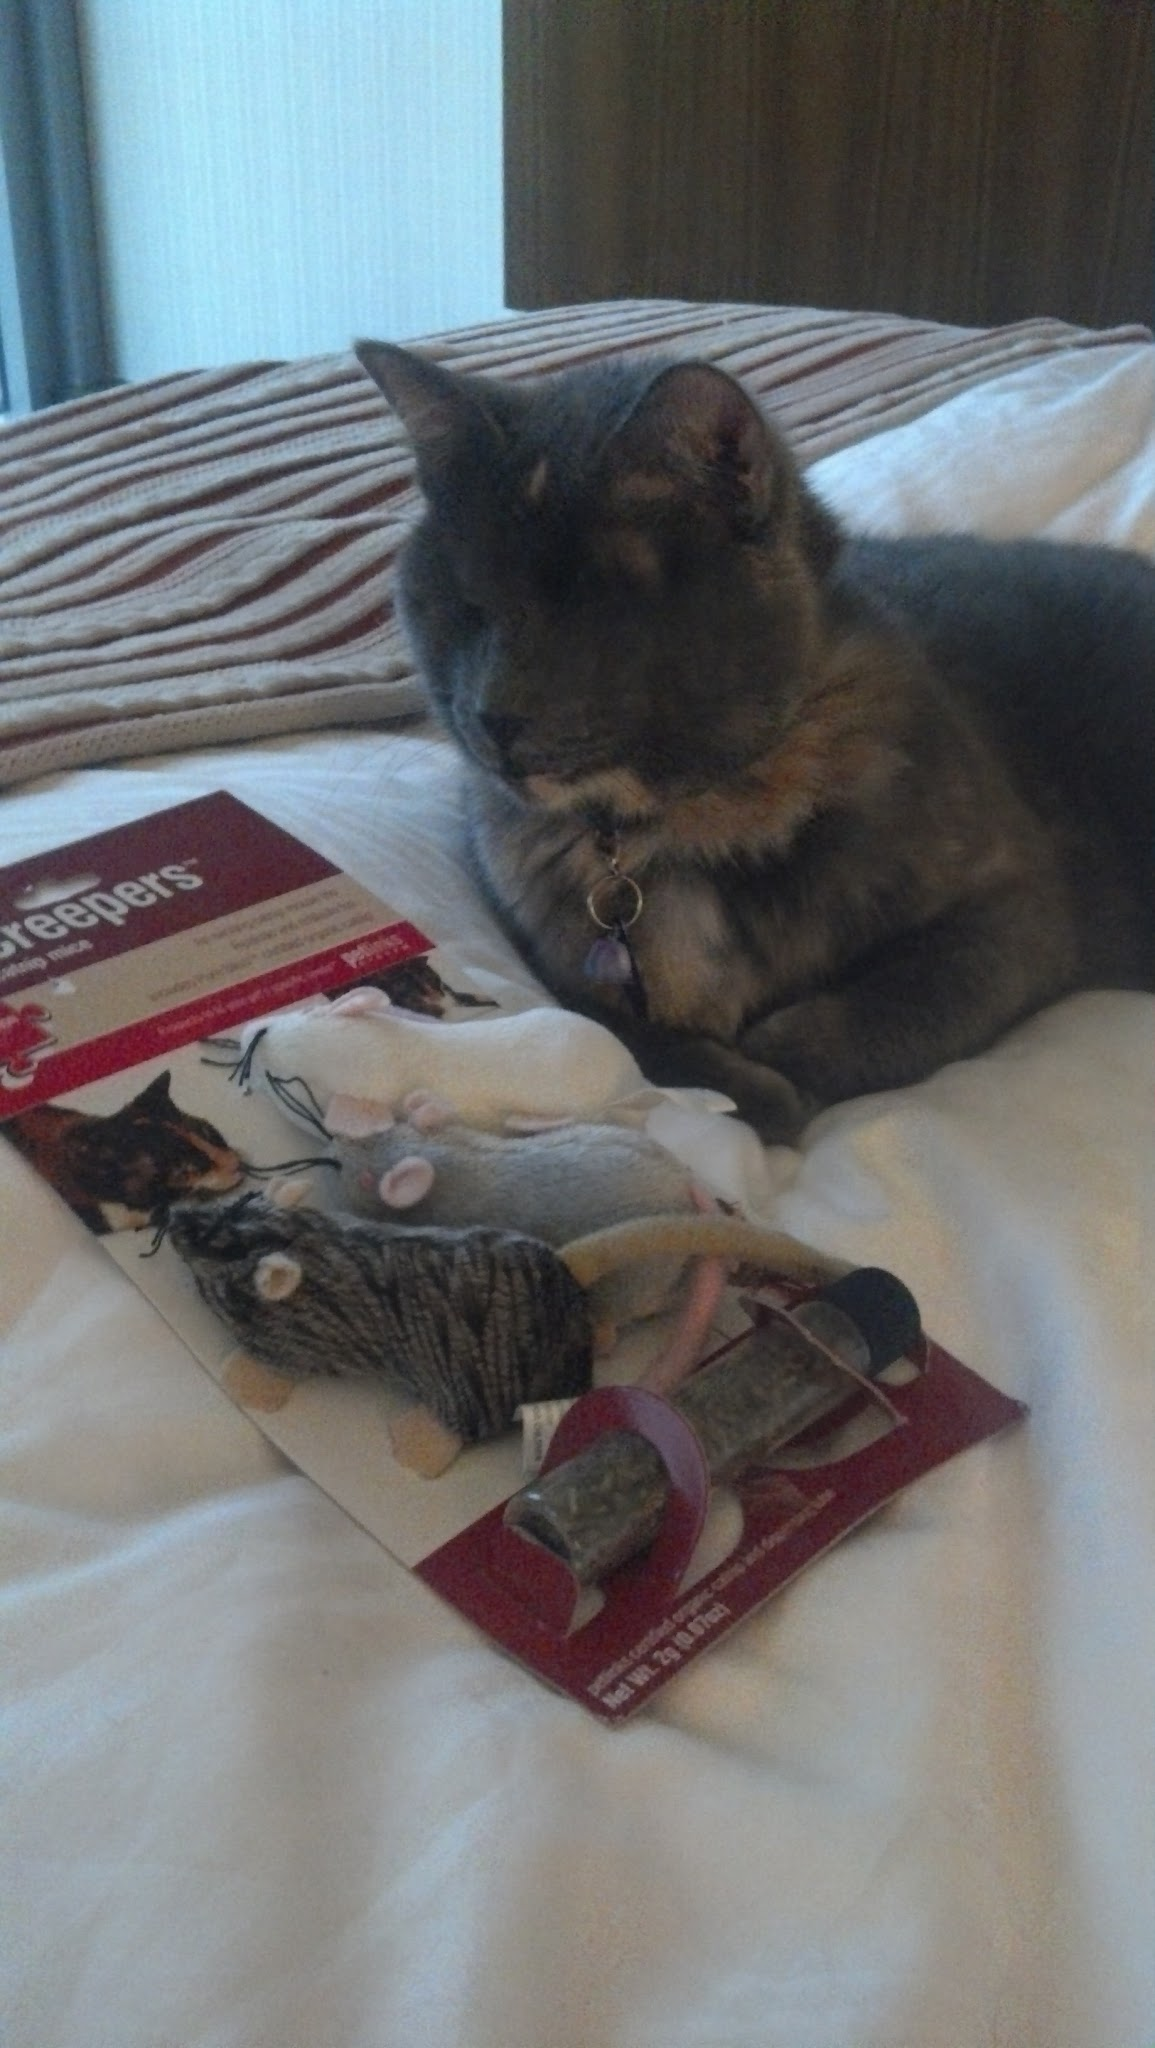 Nyx and her offerings from Lindsay